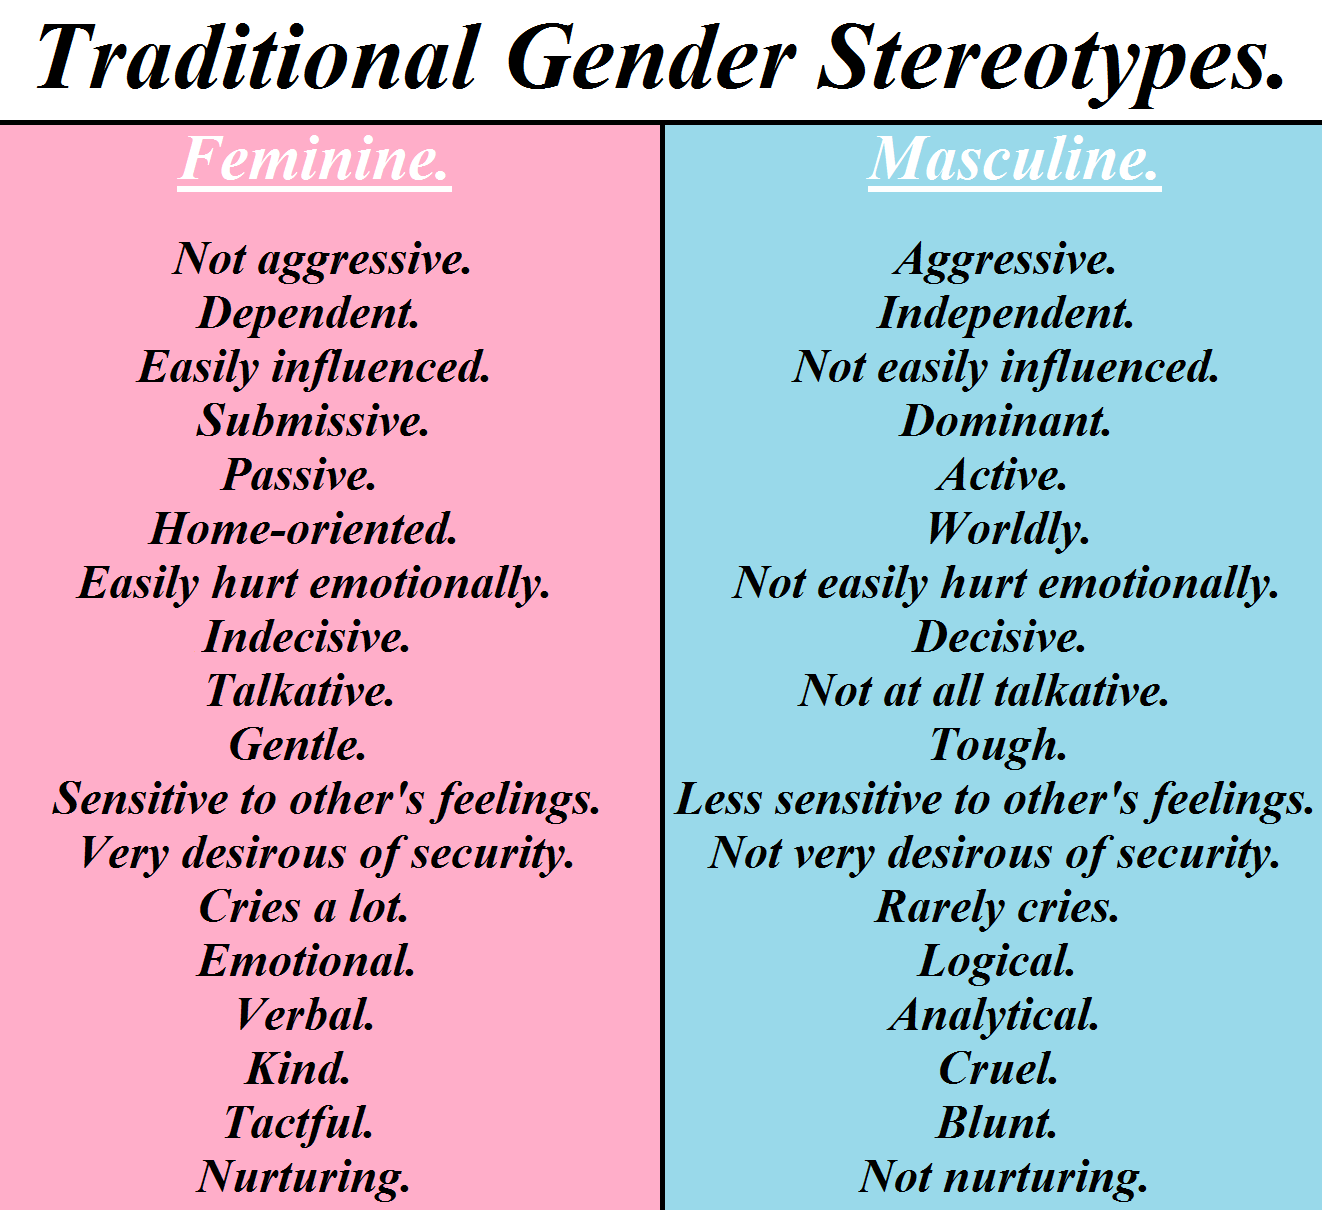 essay on gender stereotypes in south africa You May Also Find These Documents Helpful